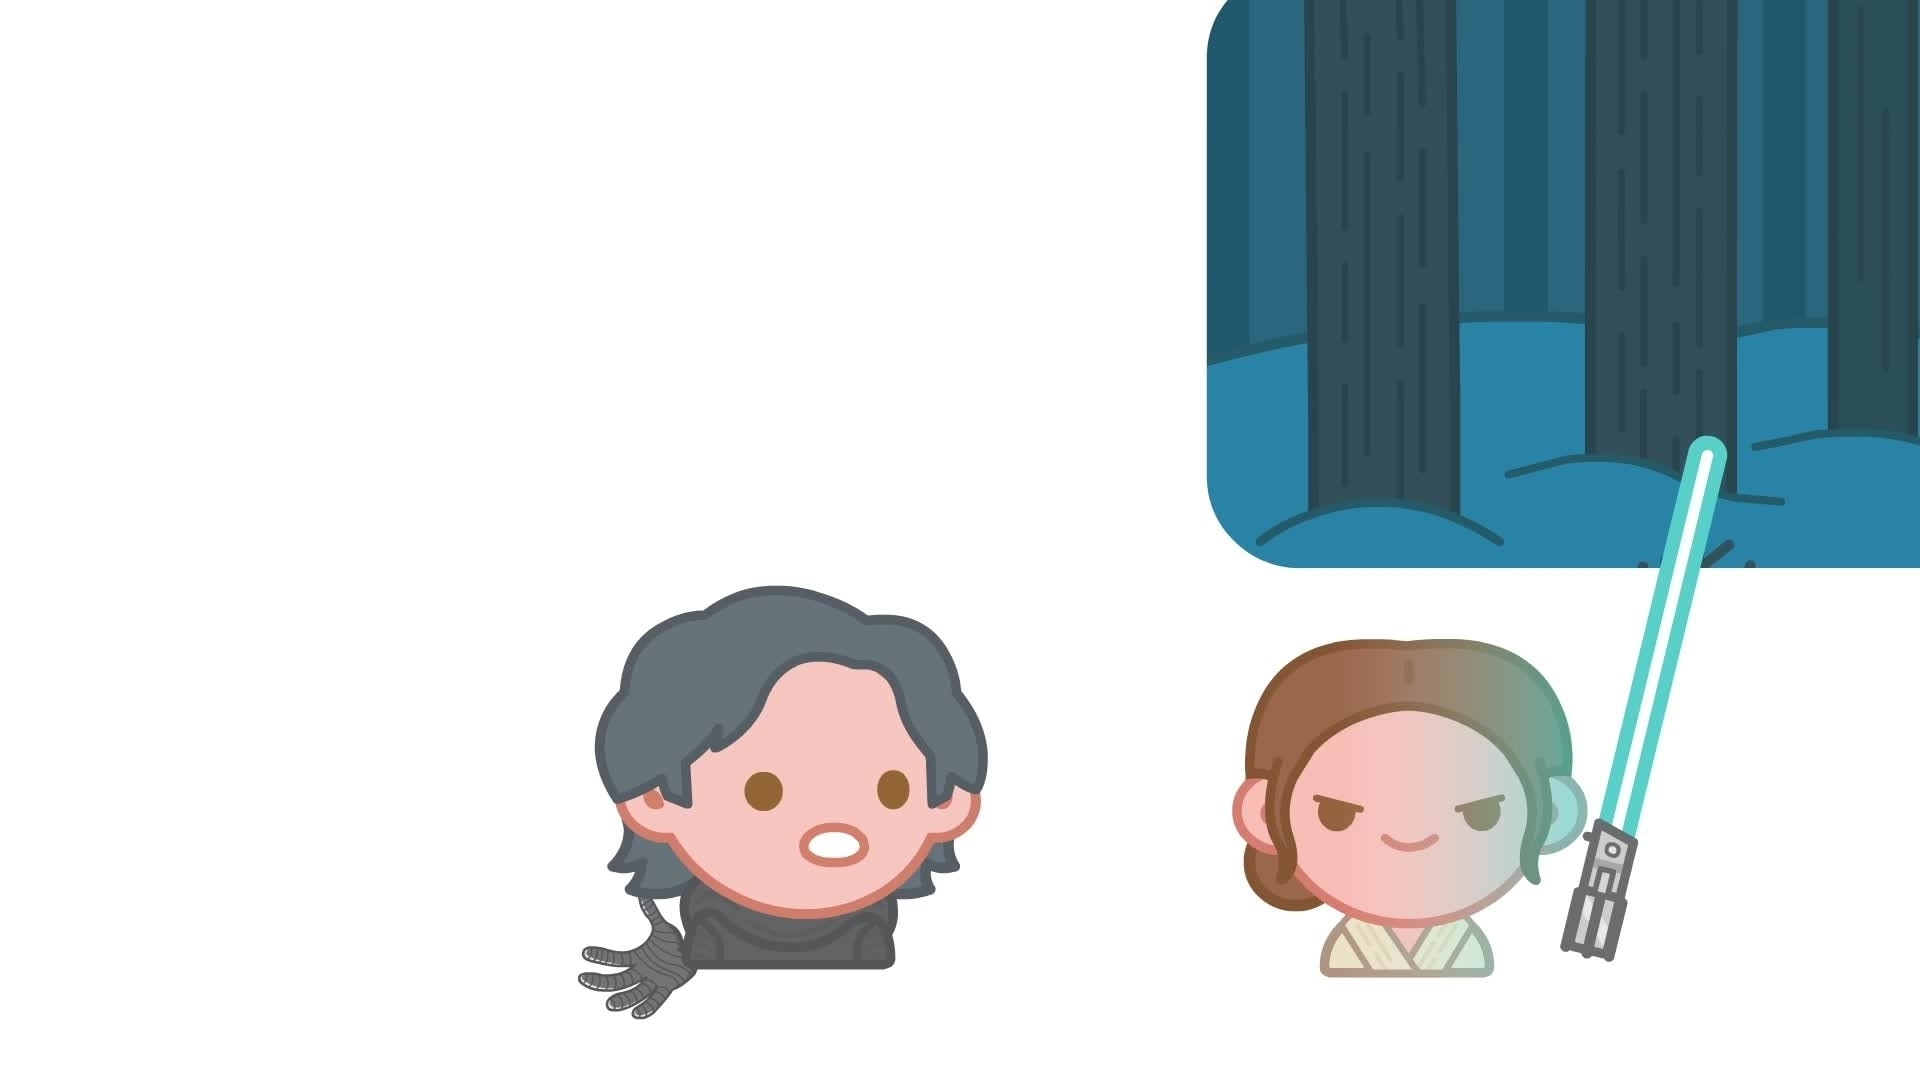 Berättad med emoji: The Force Awakens